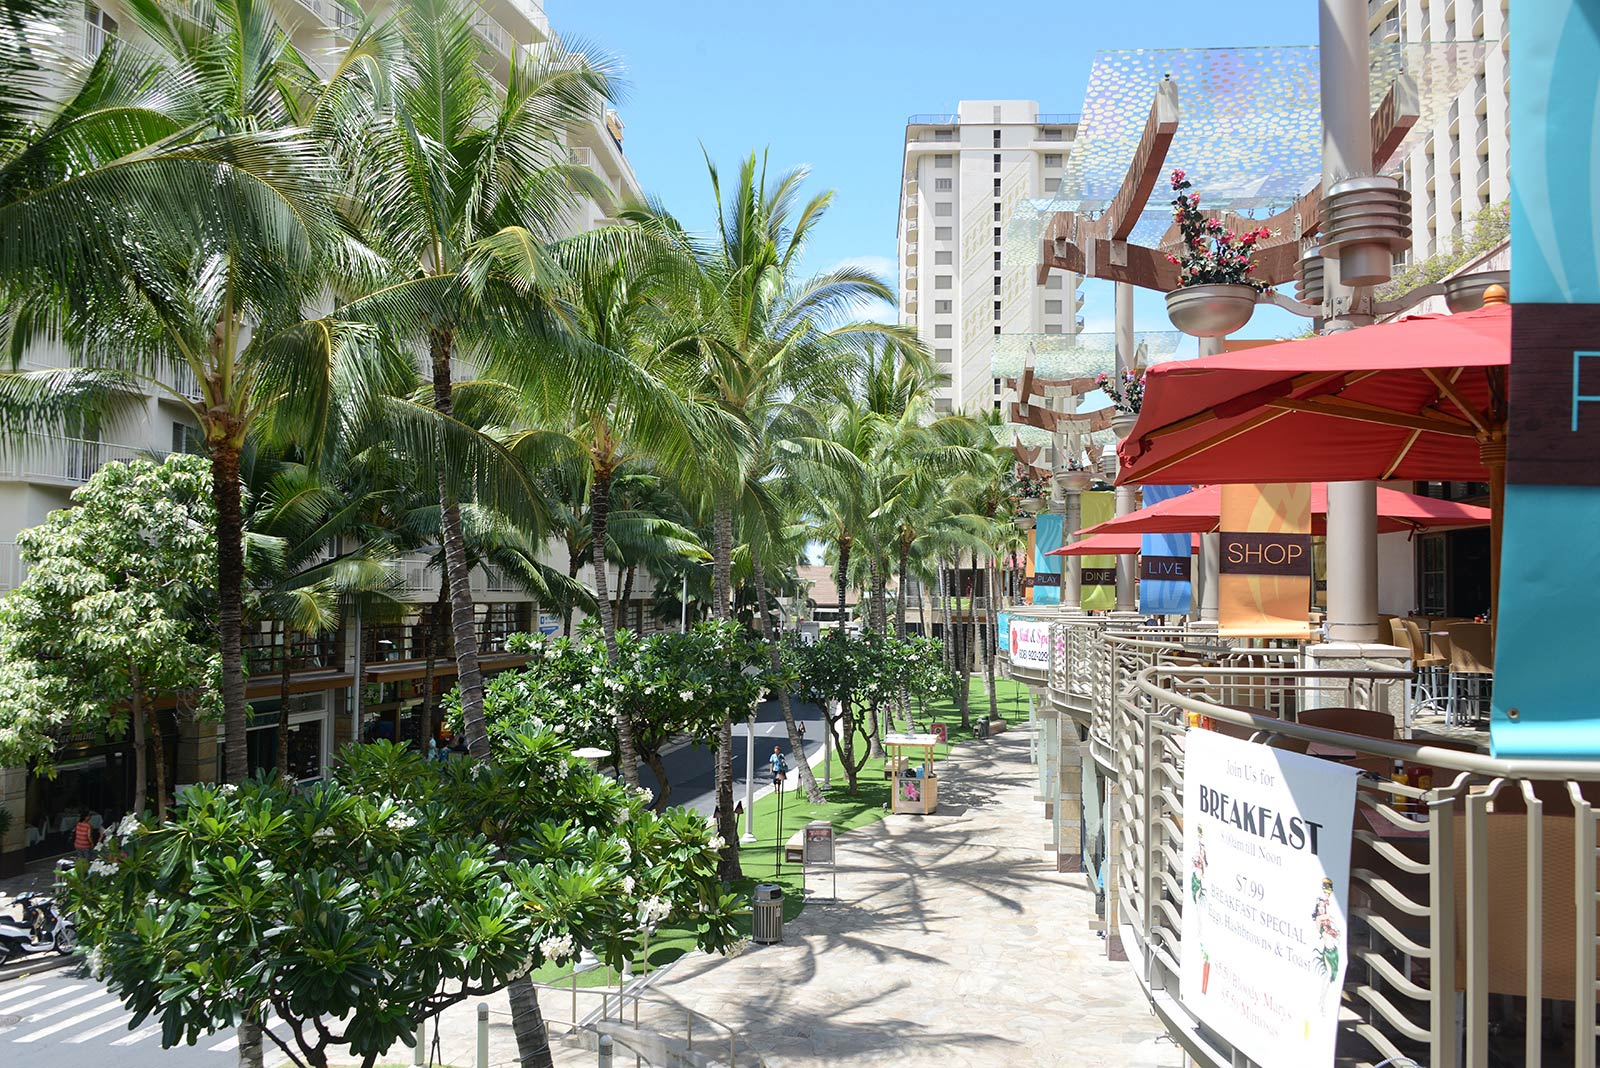 Wyndham Waikiki Beach Walk Timeshare Resales. Lubbock Attorney General Car Title Cash Loans. Colleges In Vancouver Bc Shogun Huntsville Al. Credit Card With Cosigner Custom Glass Awards. Army Reserves Education Benefits. Office Of Foreign Assets Control Blocked Persons List. Girls With Big Ass Getting Fucked. Dataware Housing Concepts Firewall Web Filter. The Coolest Thing On The Internet